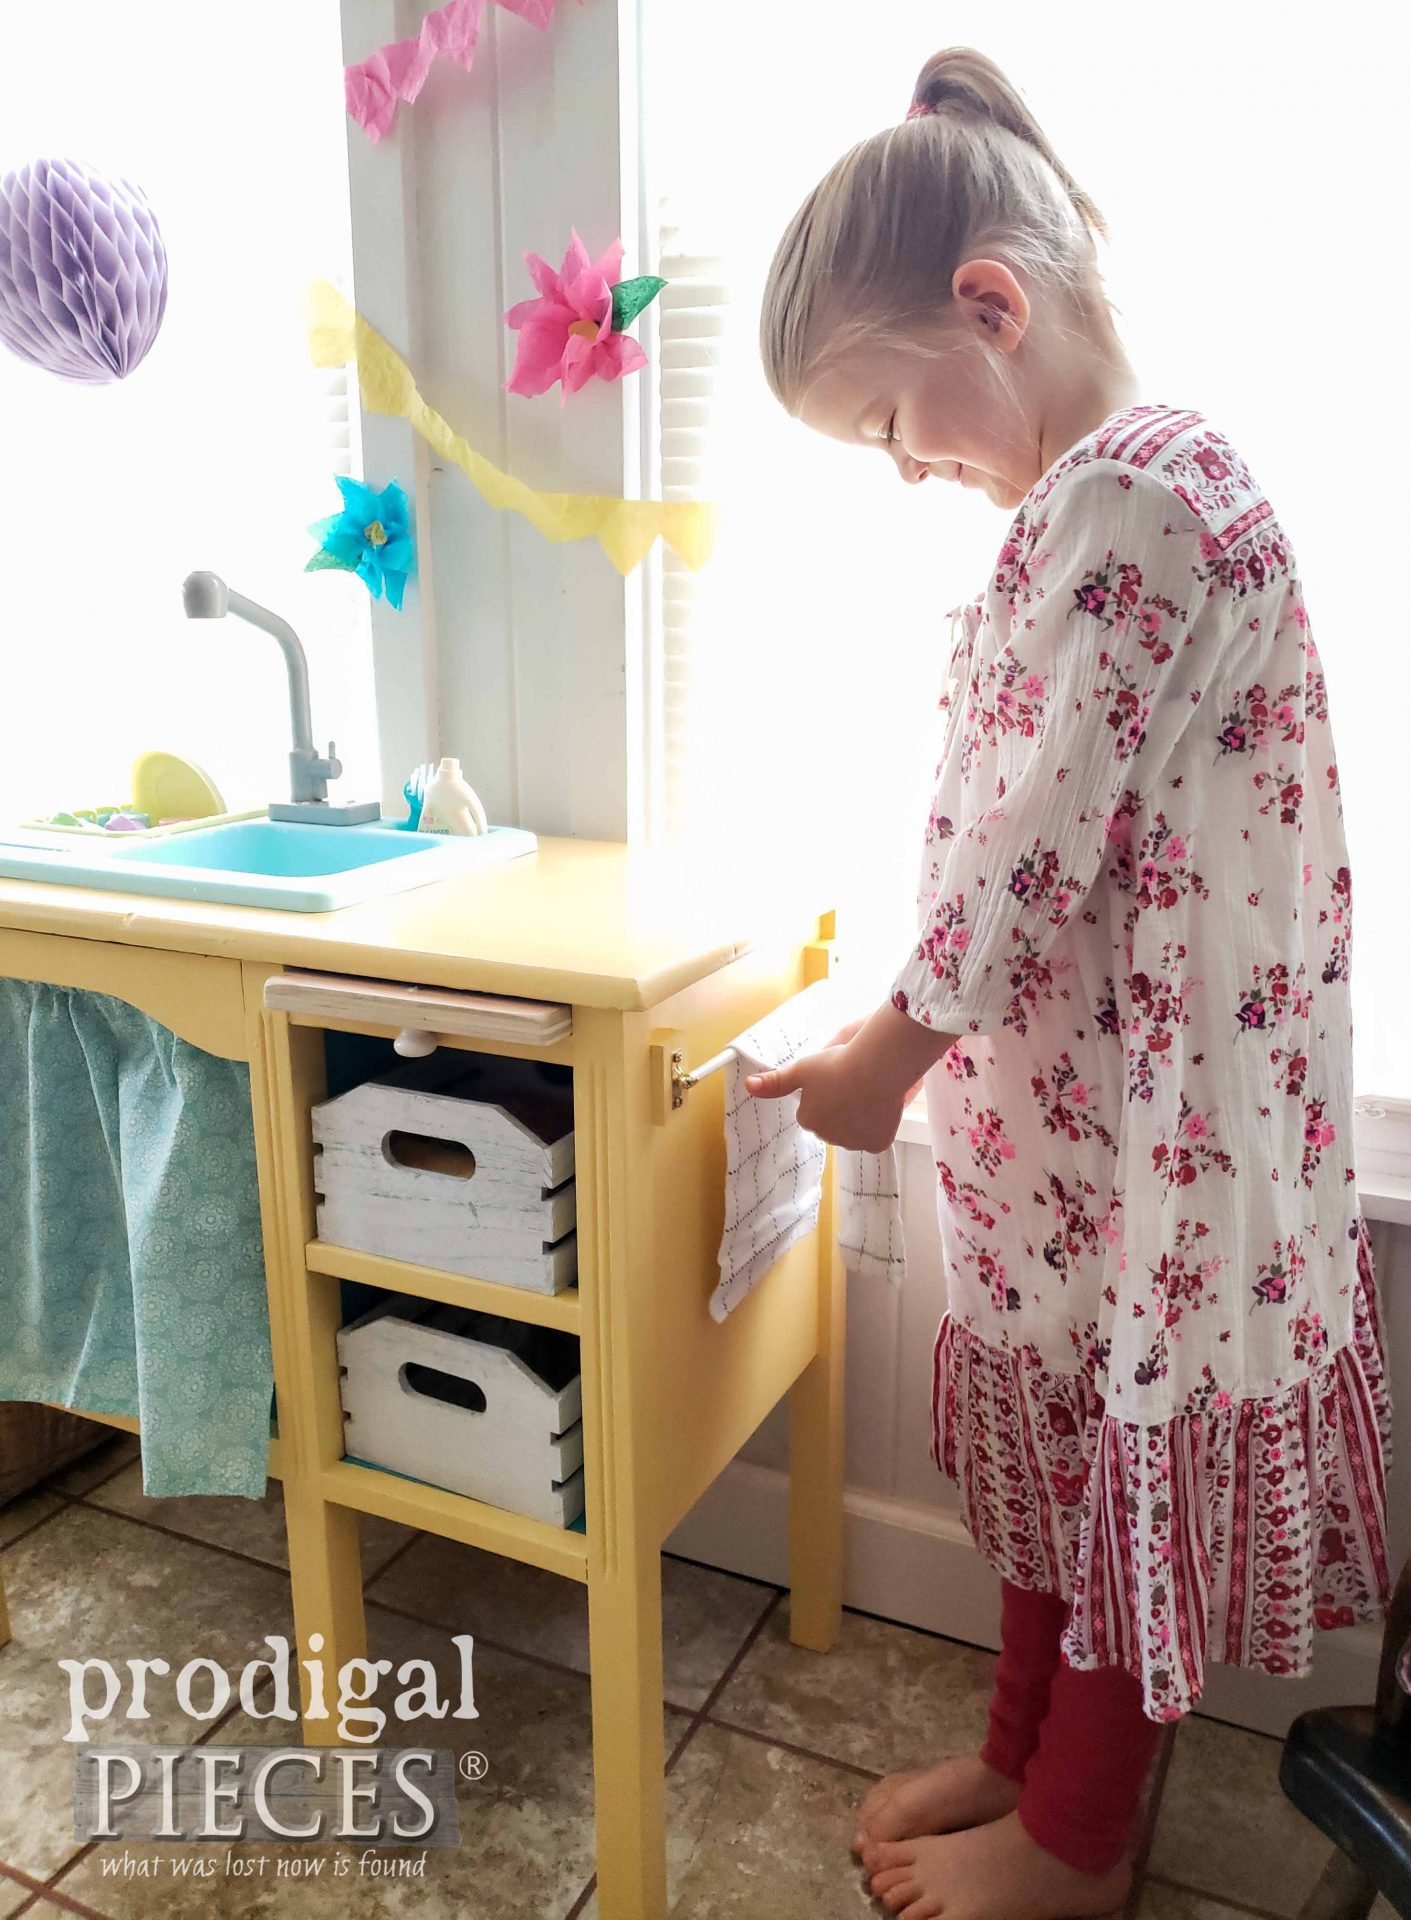 Girl Drying Hands on Play Kitchen Towel by Larissa Prodigal Pieces | prodigalpieces.com #prodigalpieces #kids #toys #kitchen